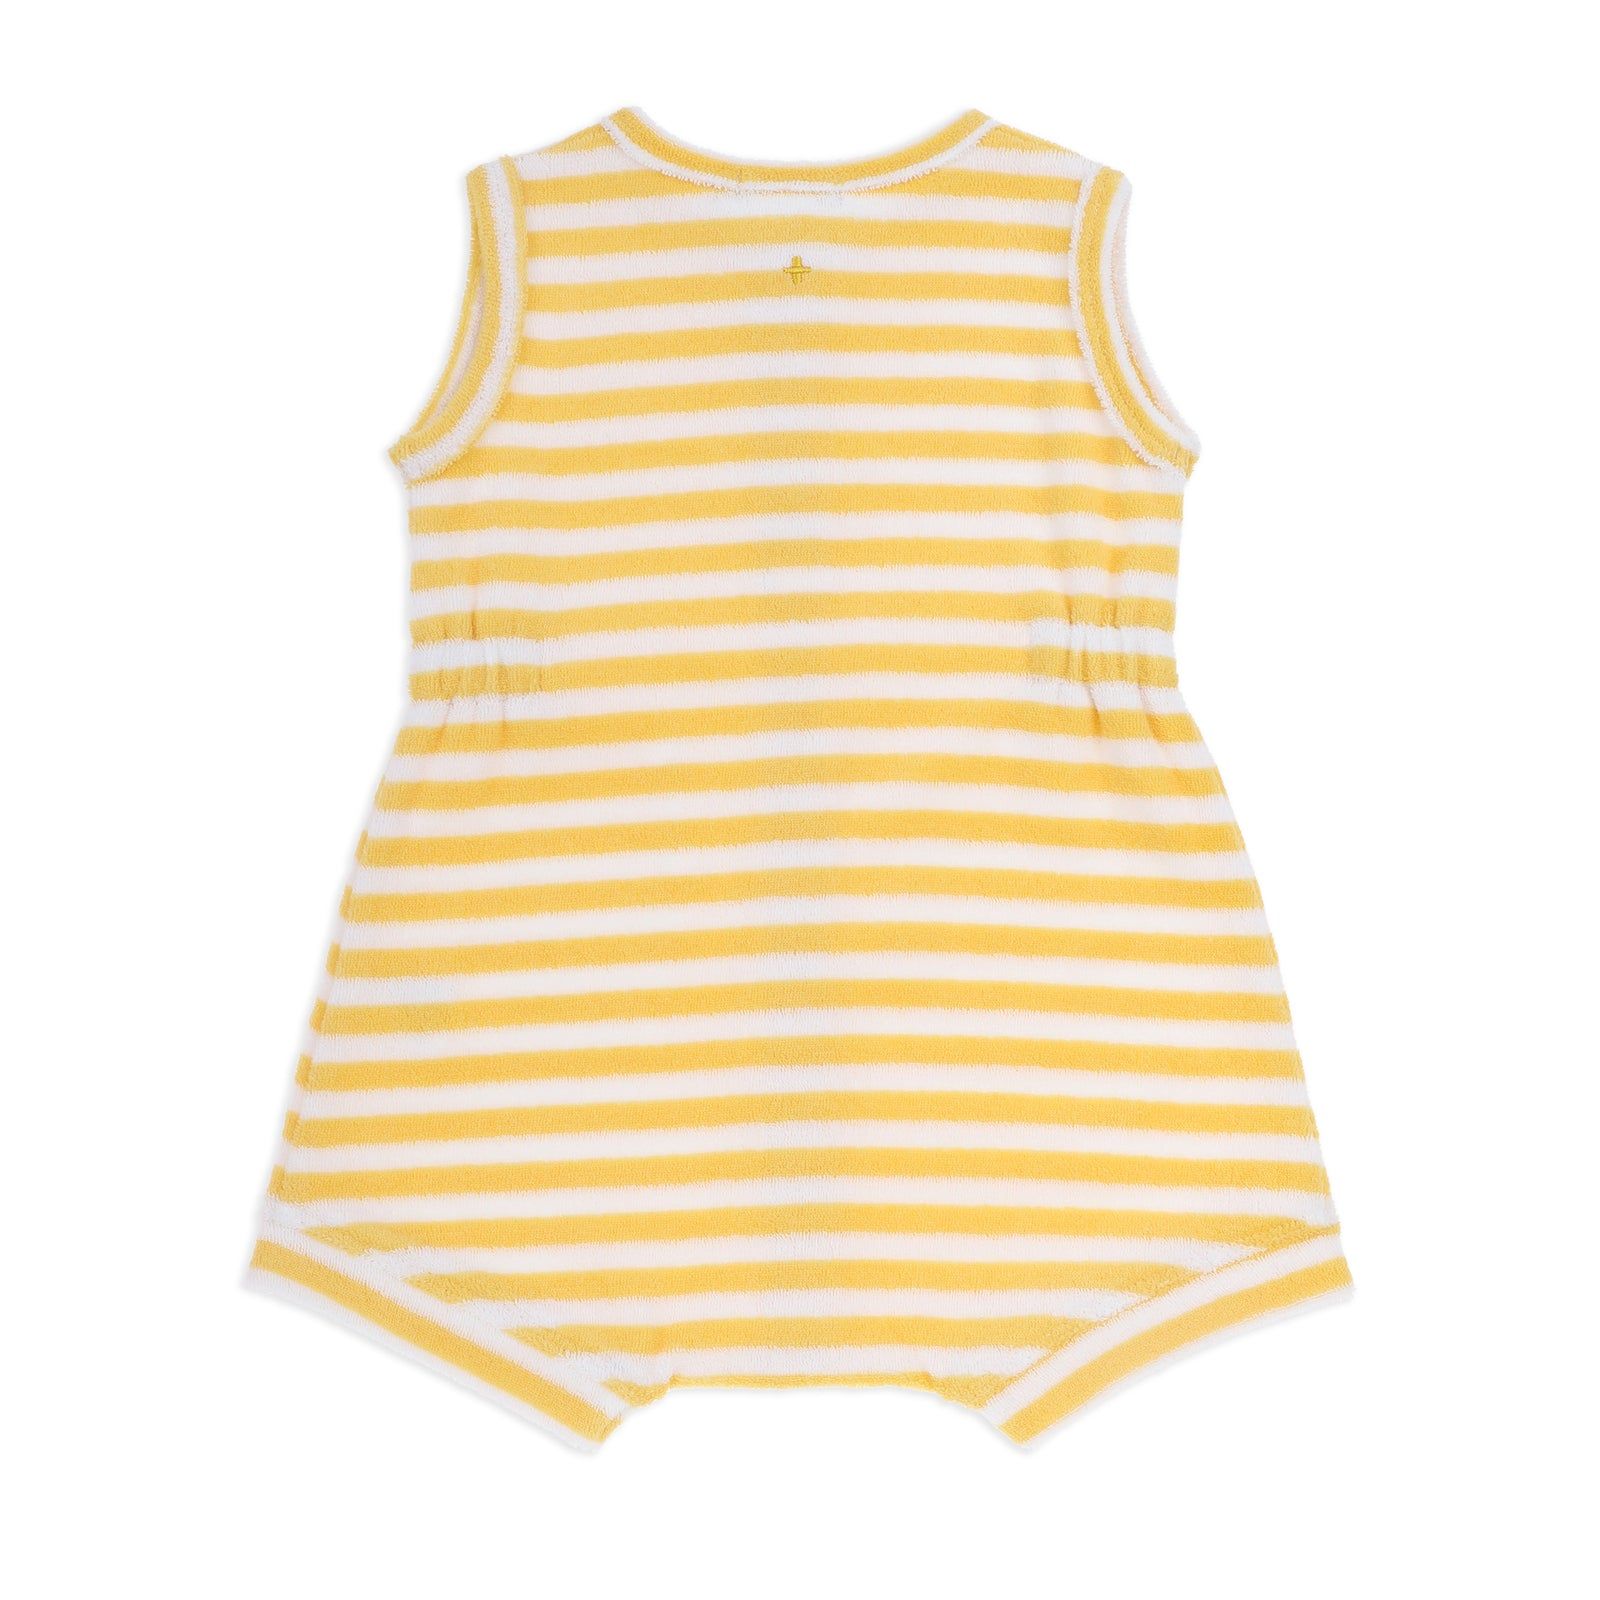 Tony Terry Towelling Romper Yellow Stripe